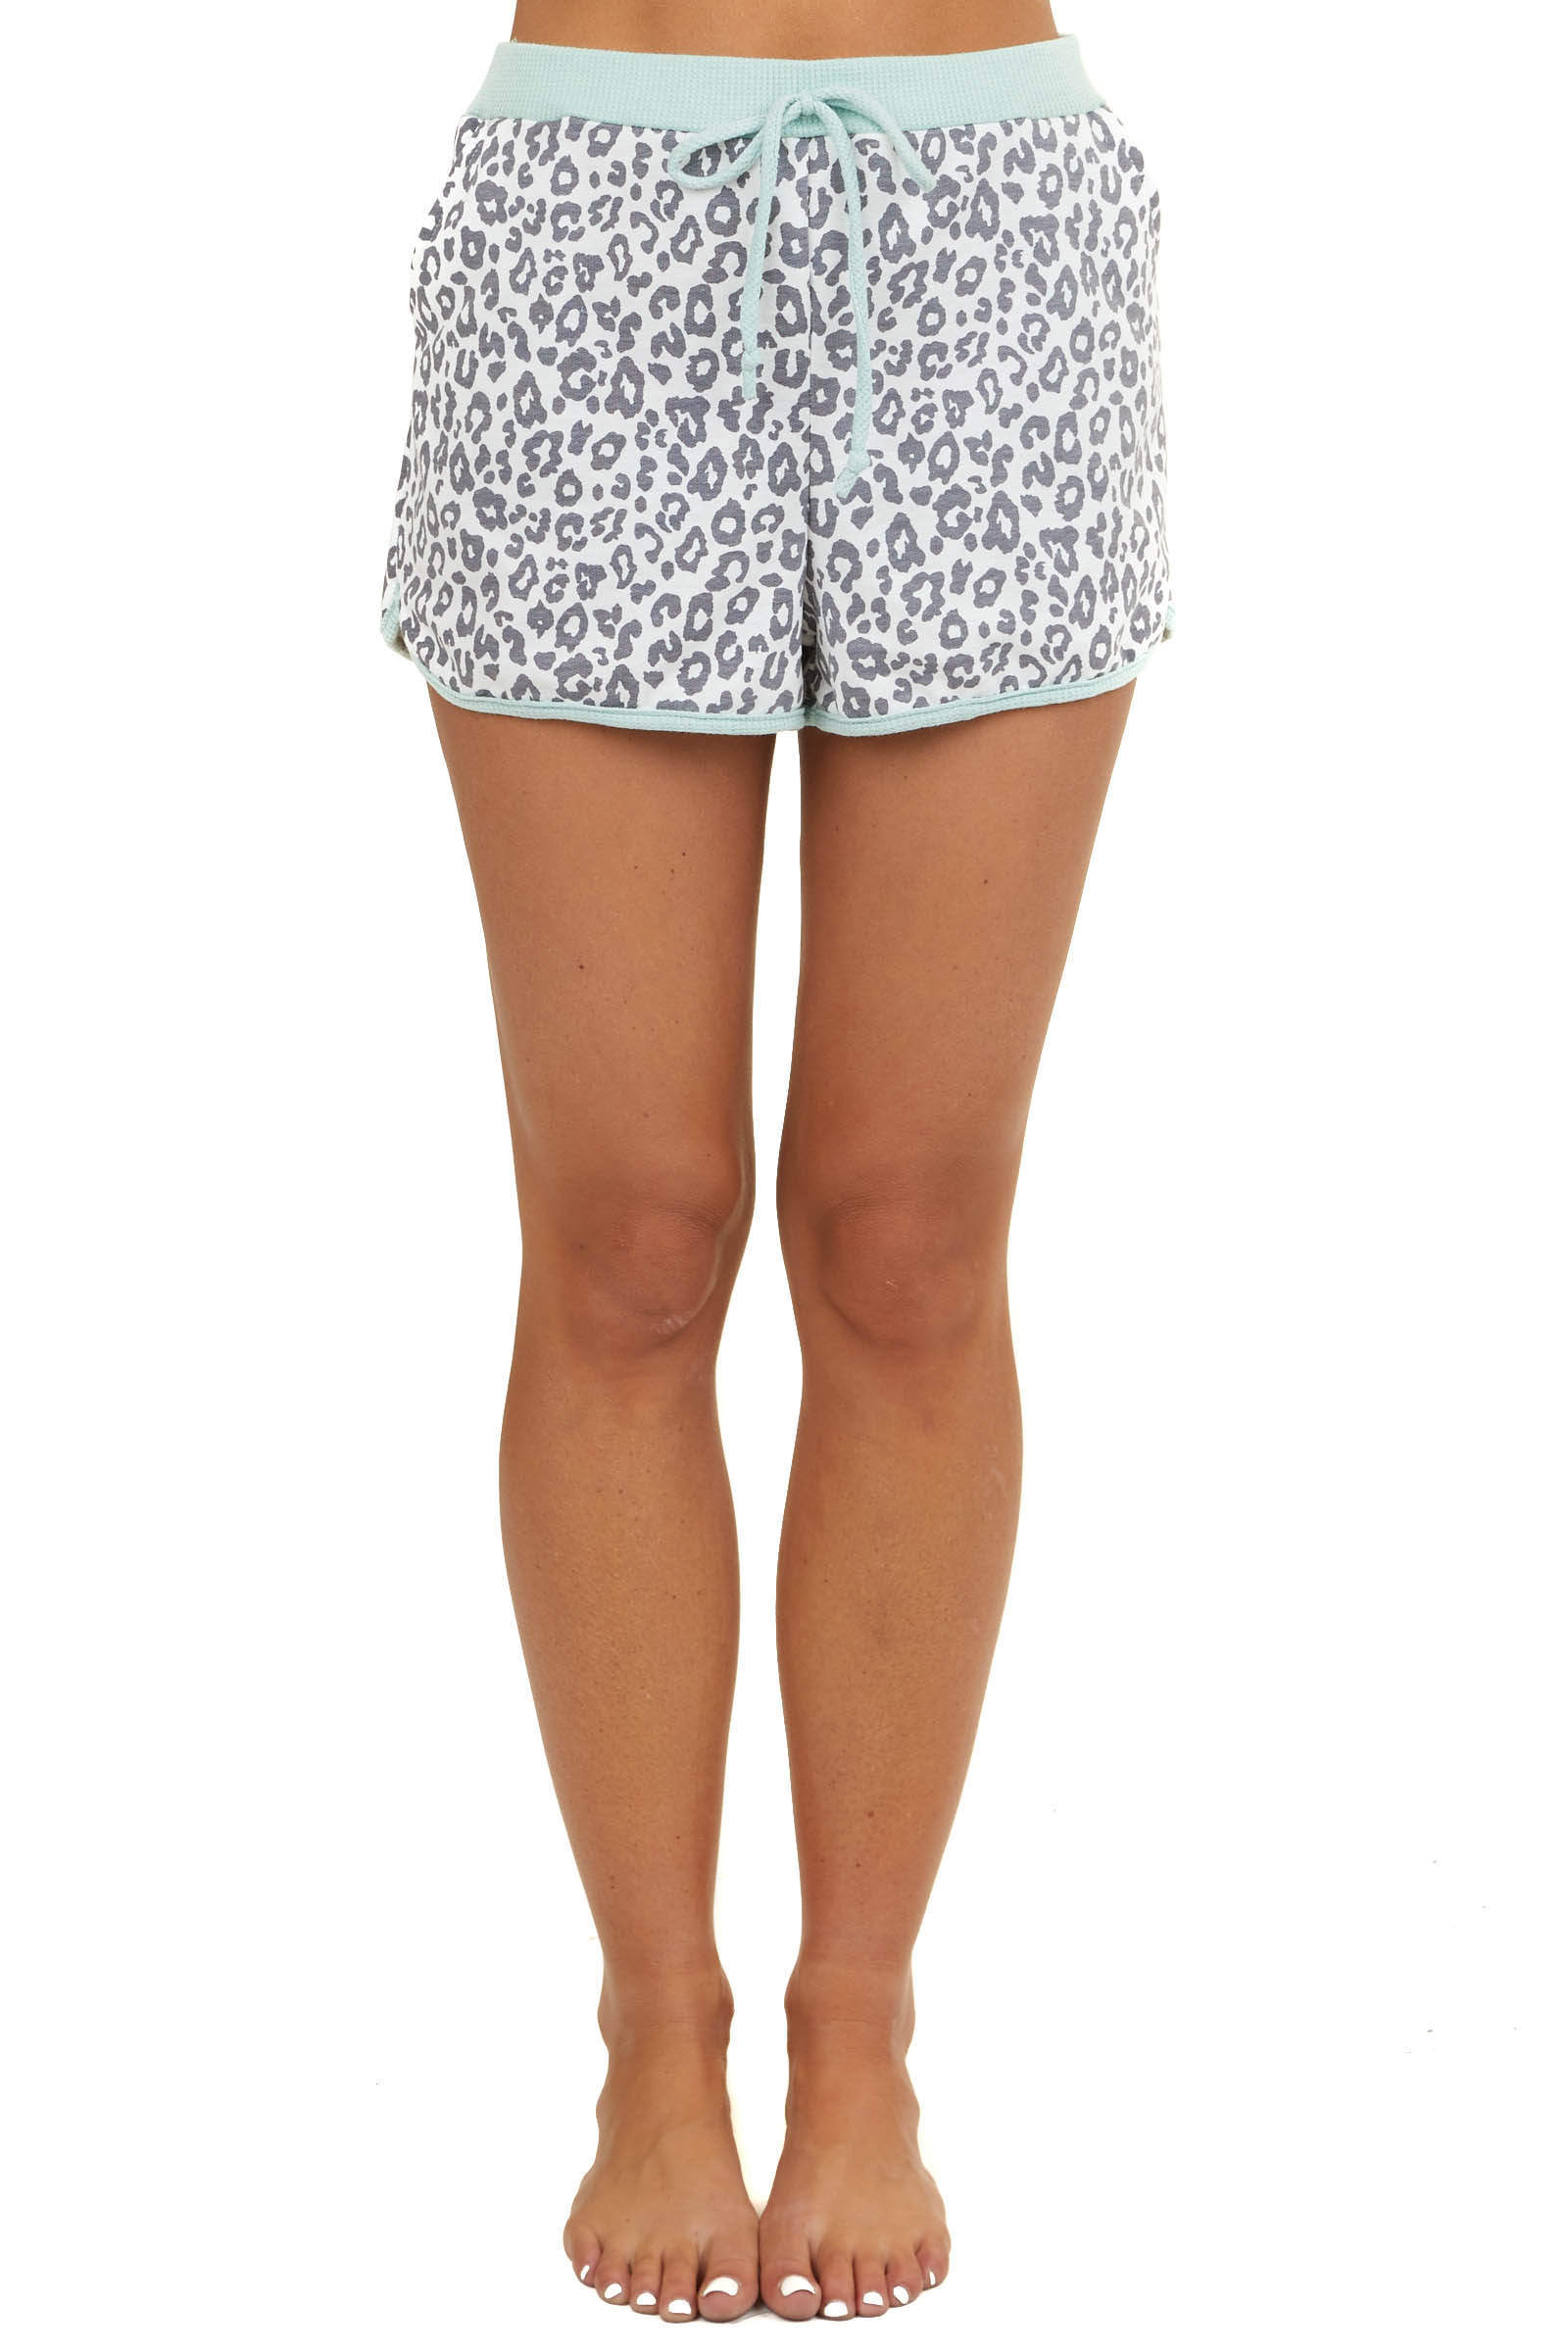 Ivory Leopard Print Drawstring Shorts with Pockets